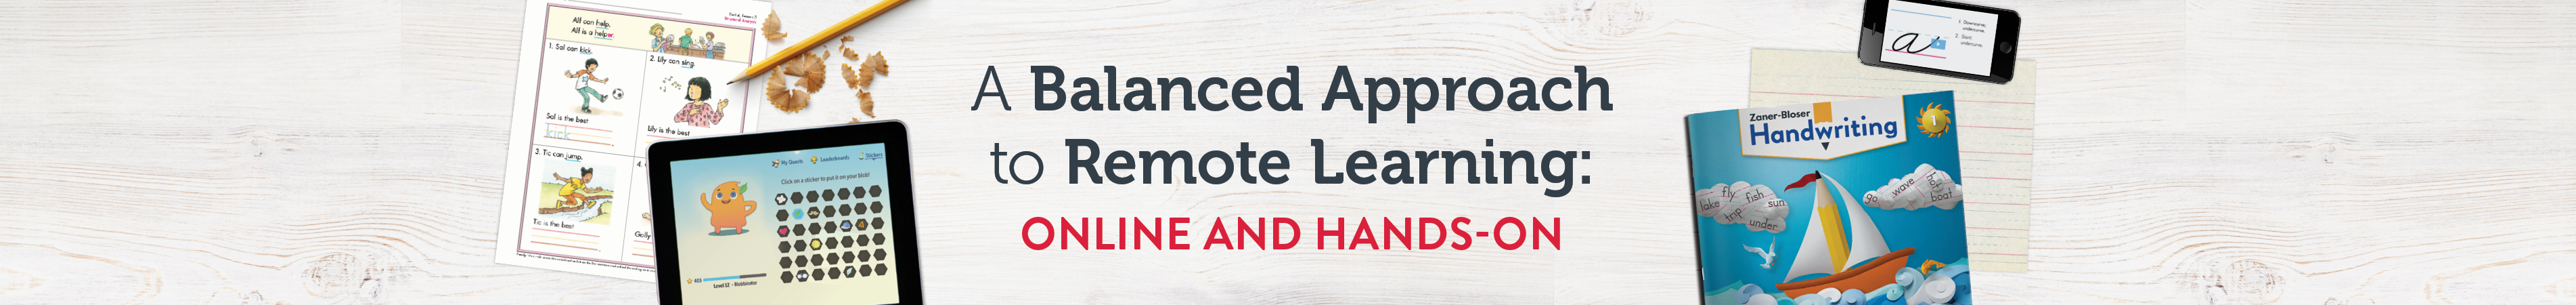 A Balanced Approach to Remote Learning: Online and Hands-on